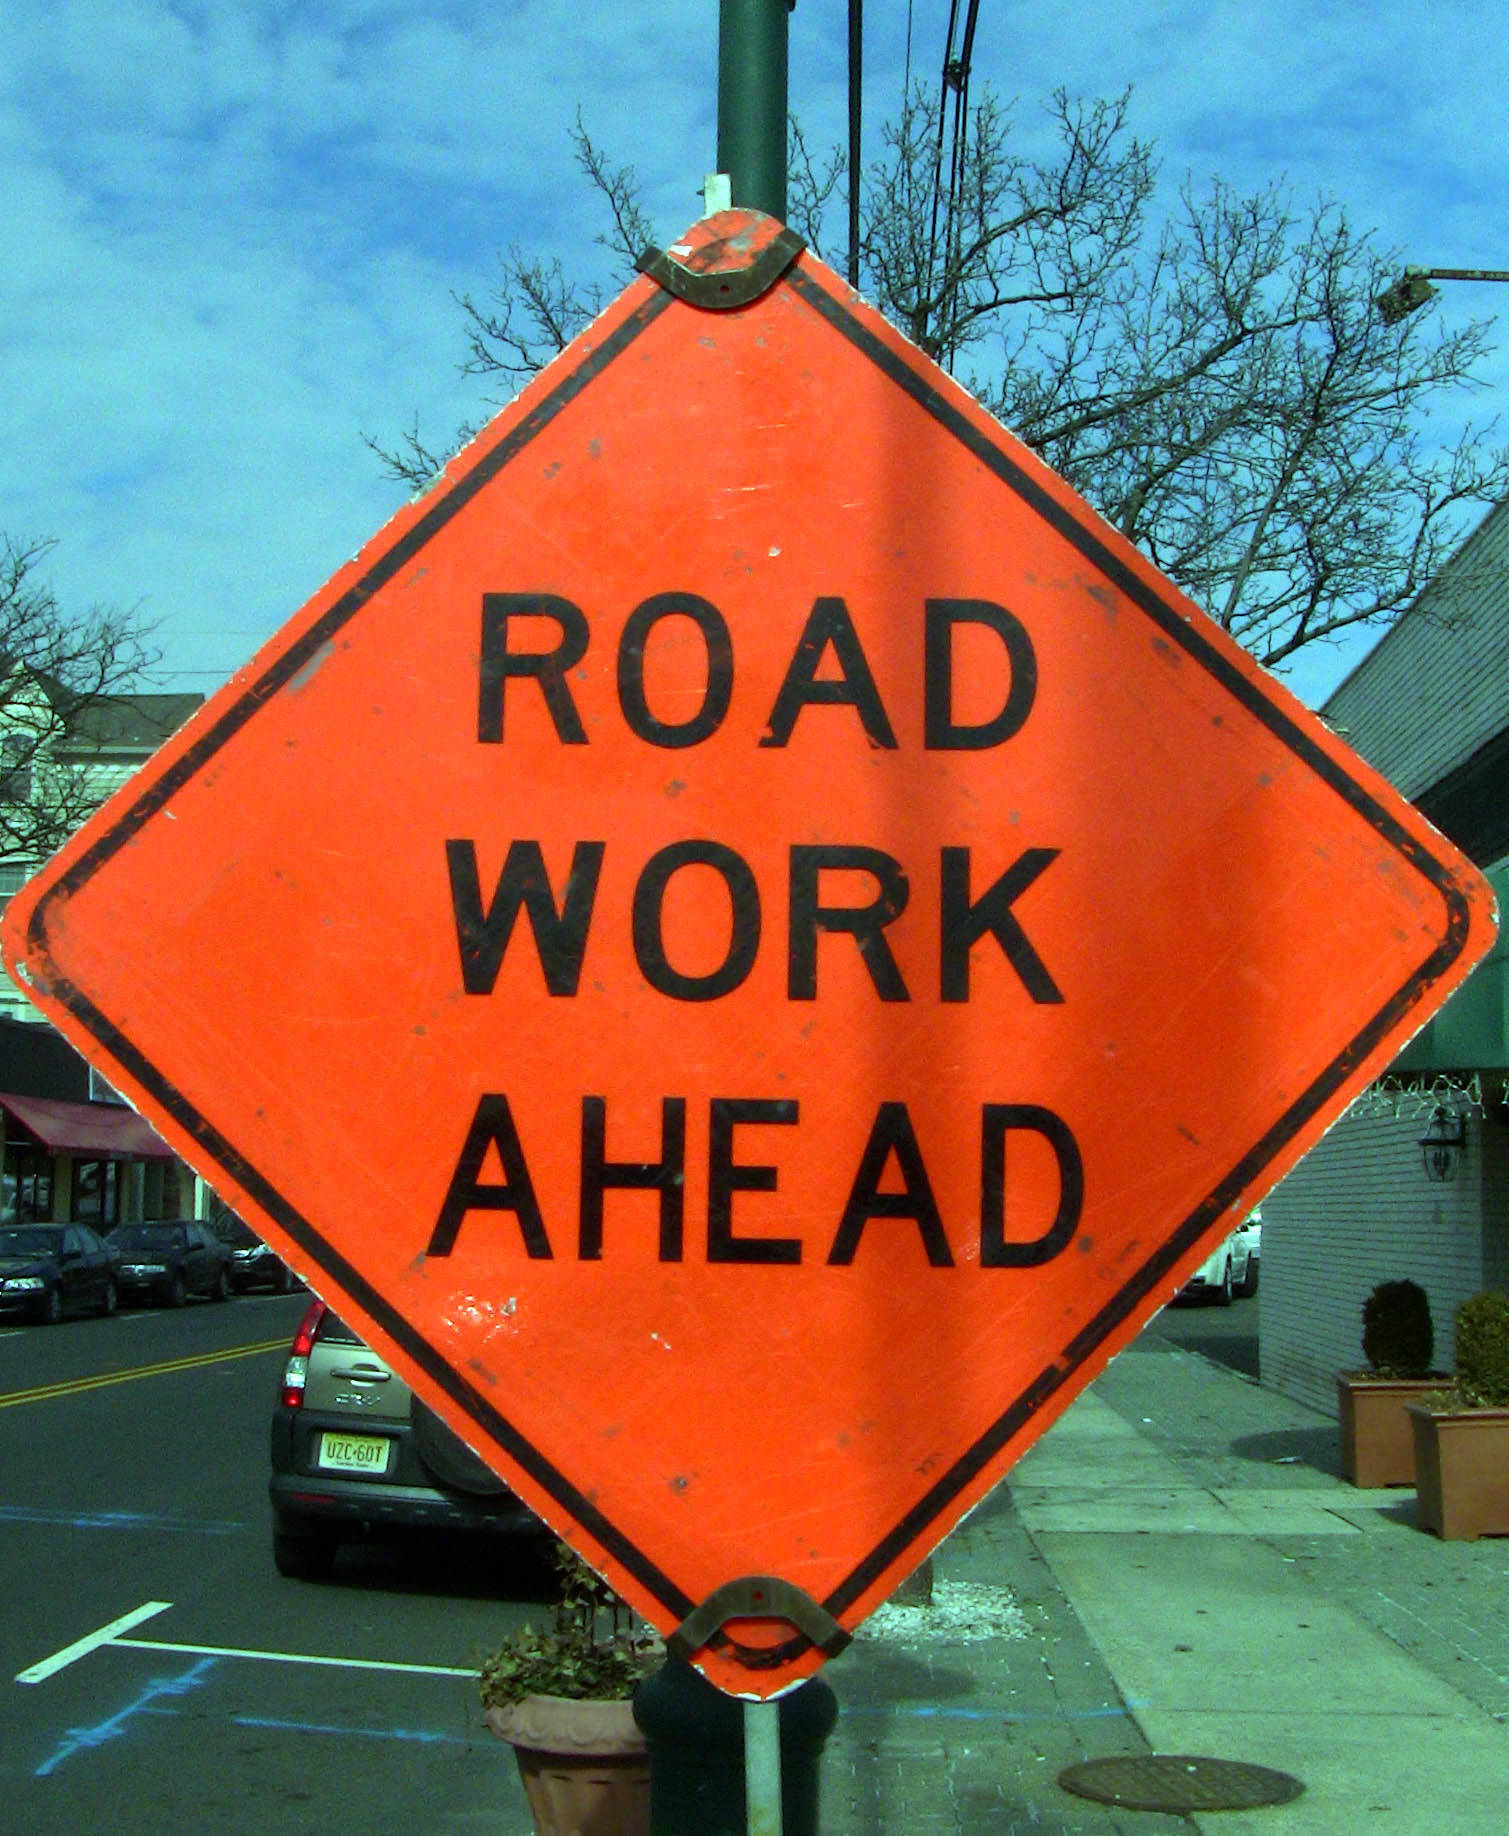 672f175a235cd7f744b8_583c141af46d2d8a5fa1_Road_Work_Ahead_sign.jpg